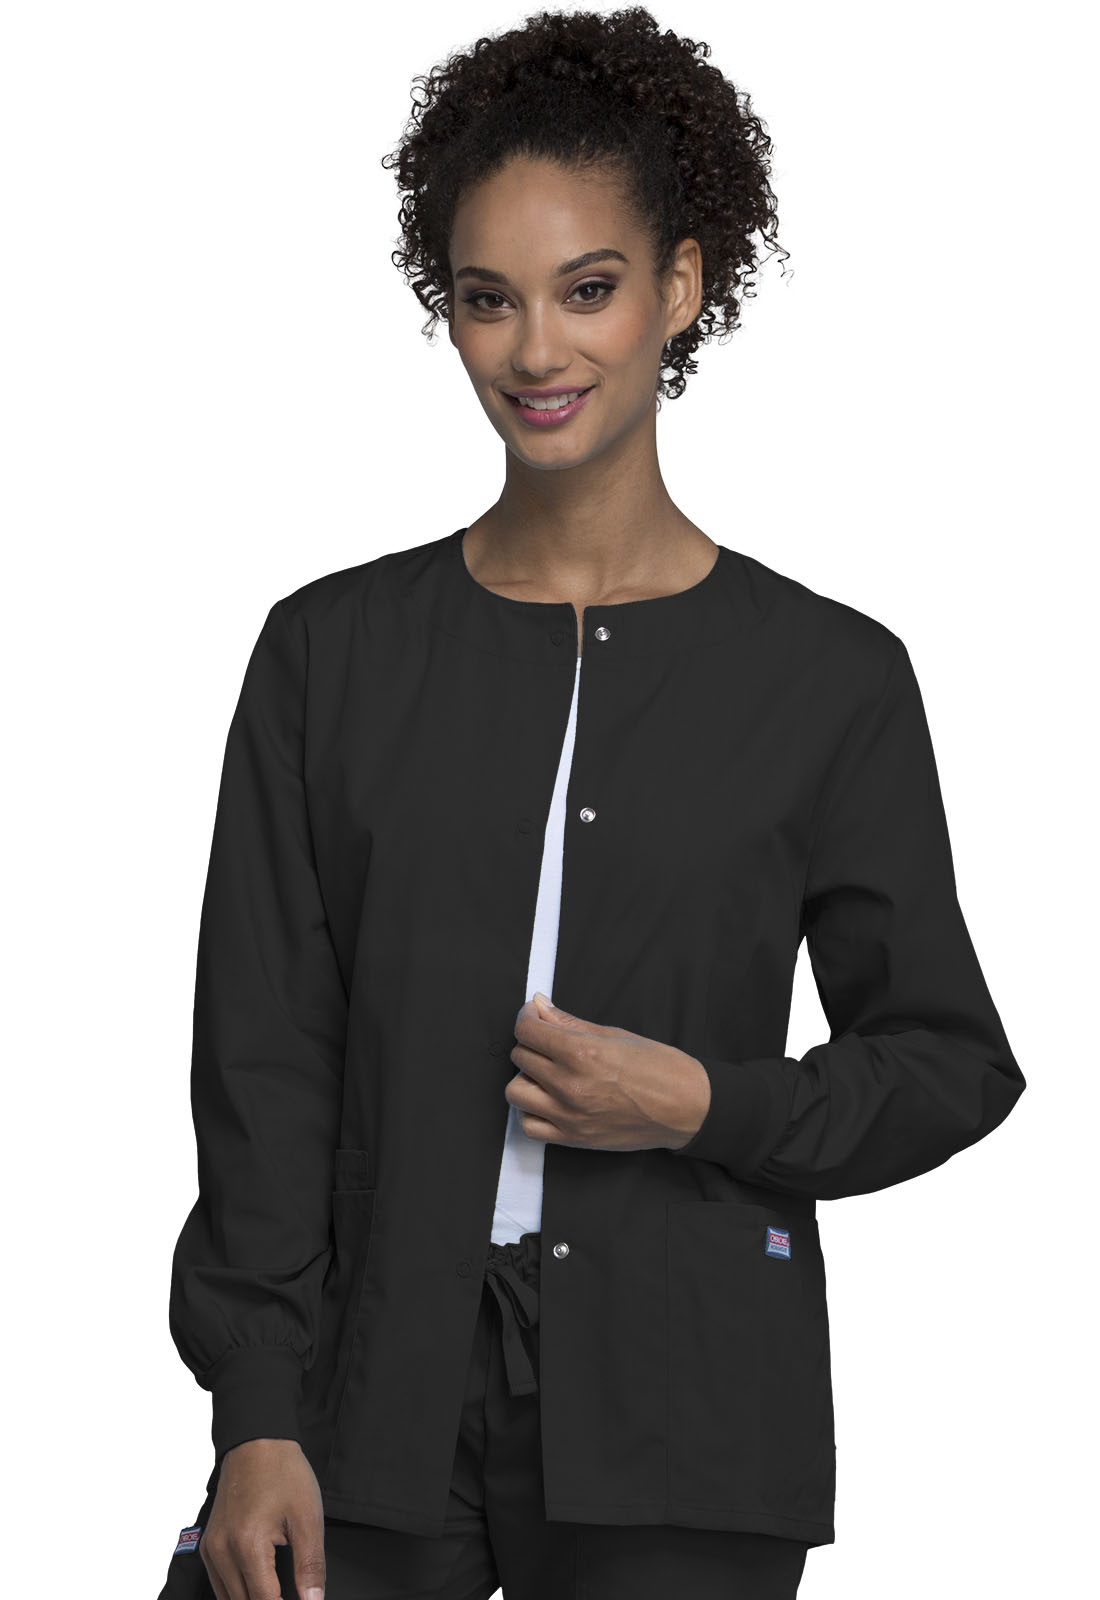 e7d90988ff4 WW Originals Snap Front Warm-Up Jacket in Black 4350-BLKW from All ...